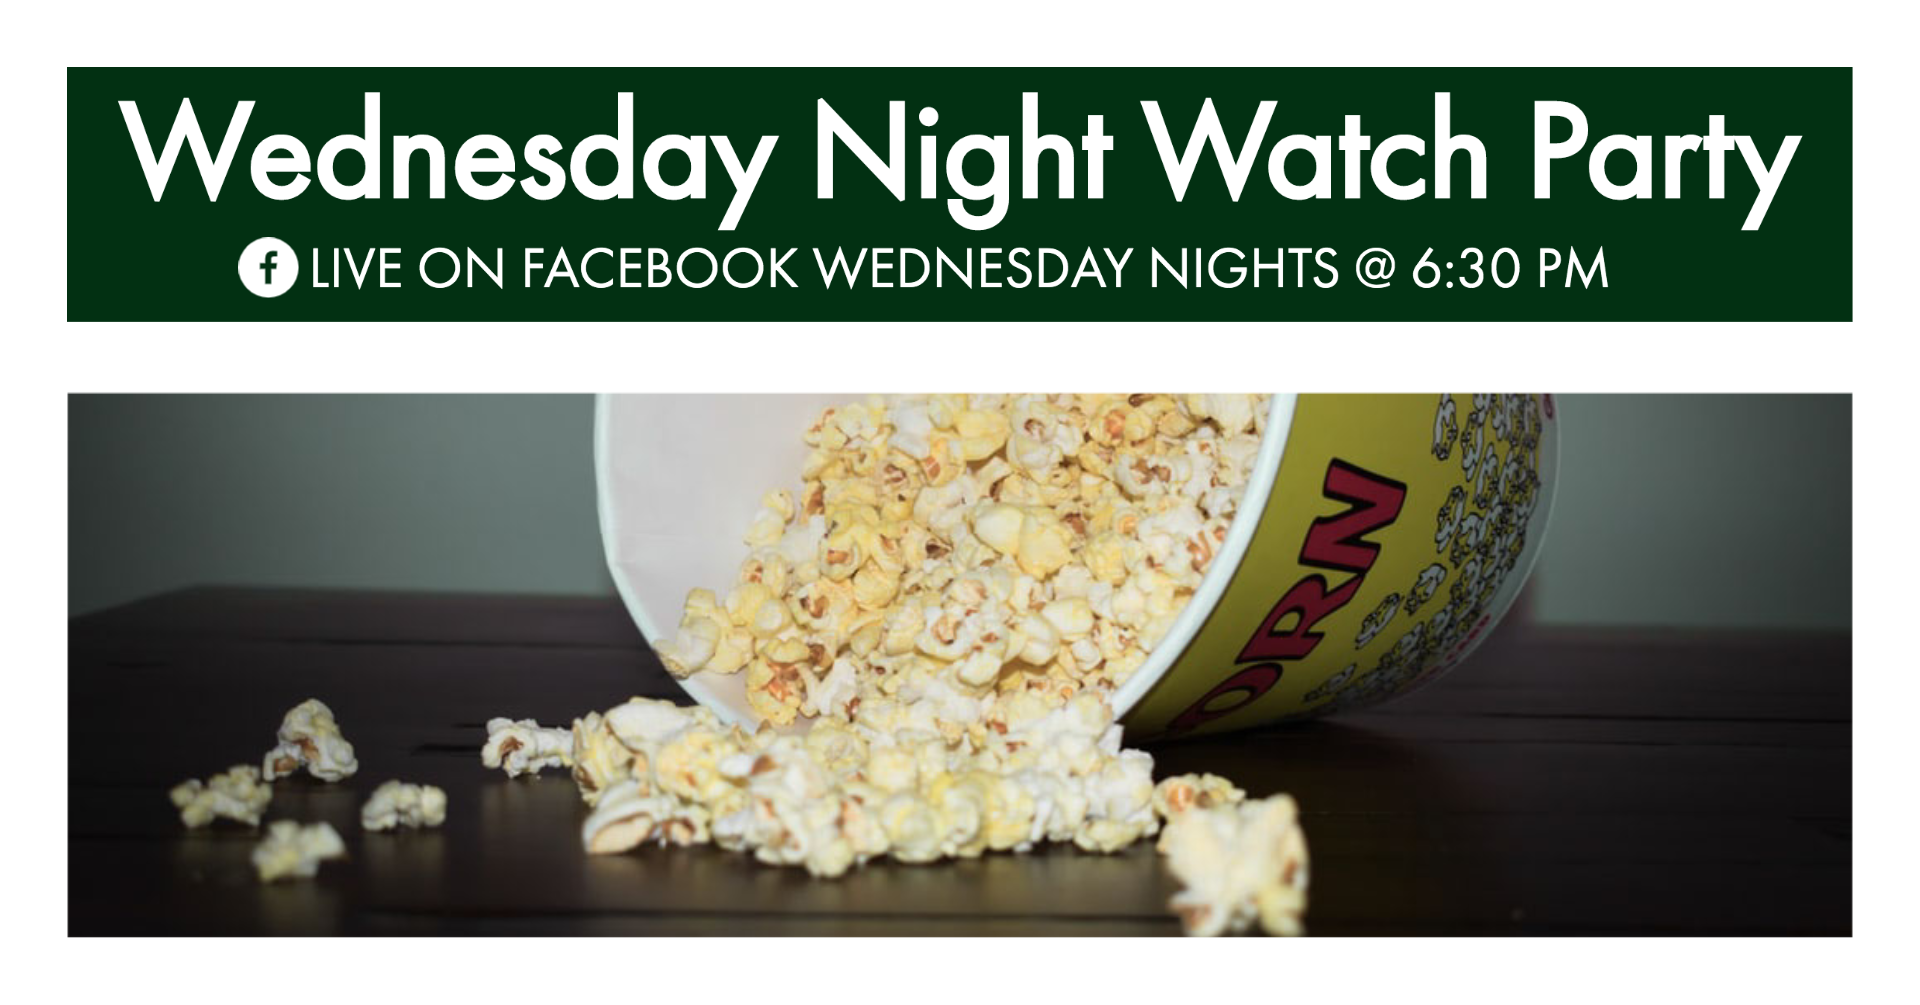 Wednesday Night Watch Party